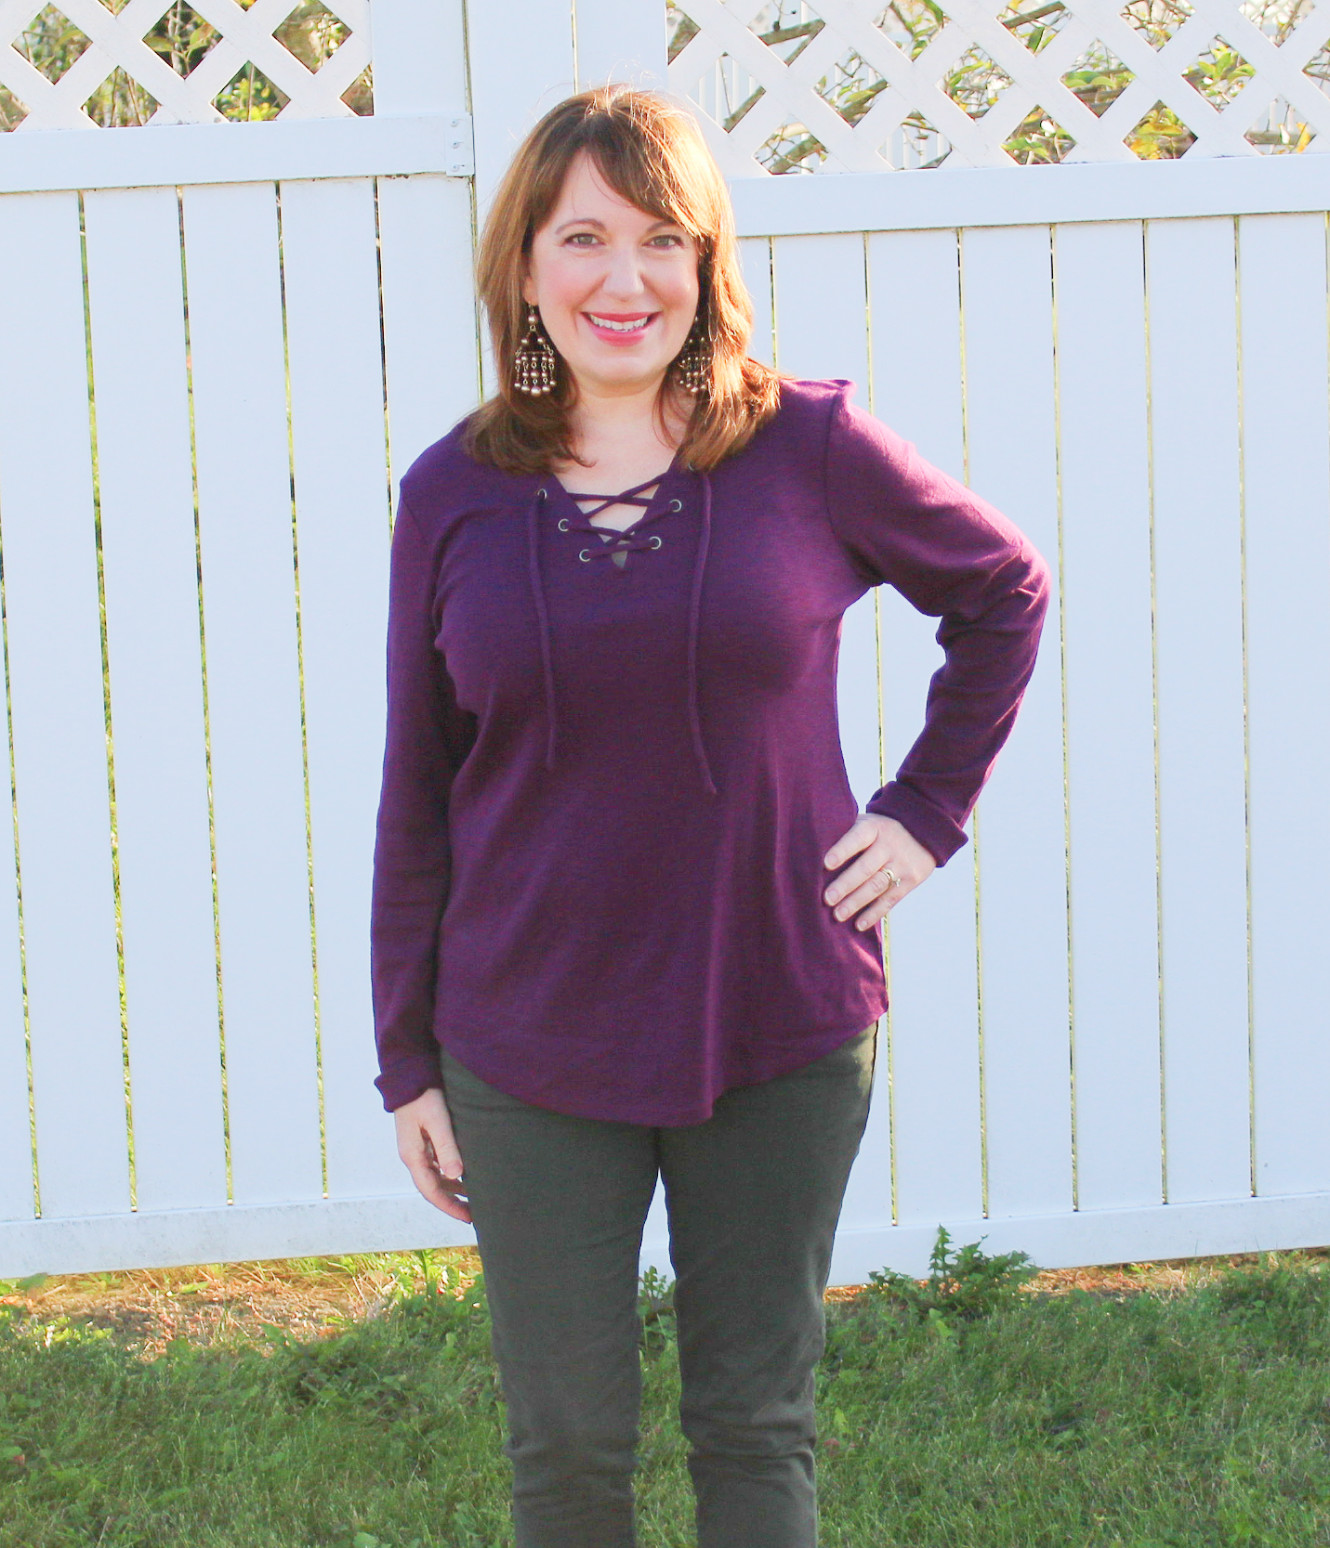 Purple Top And Statement Earrings